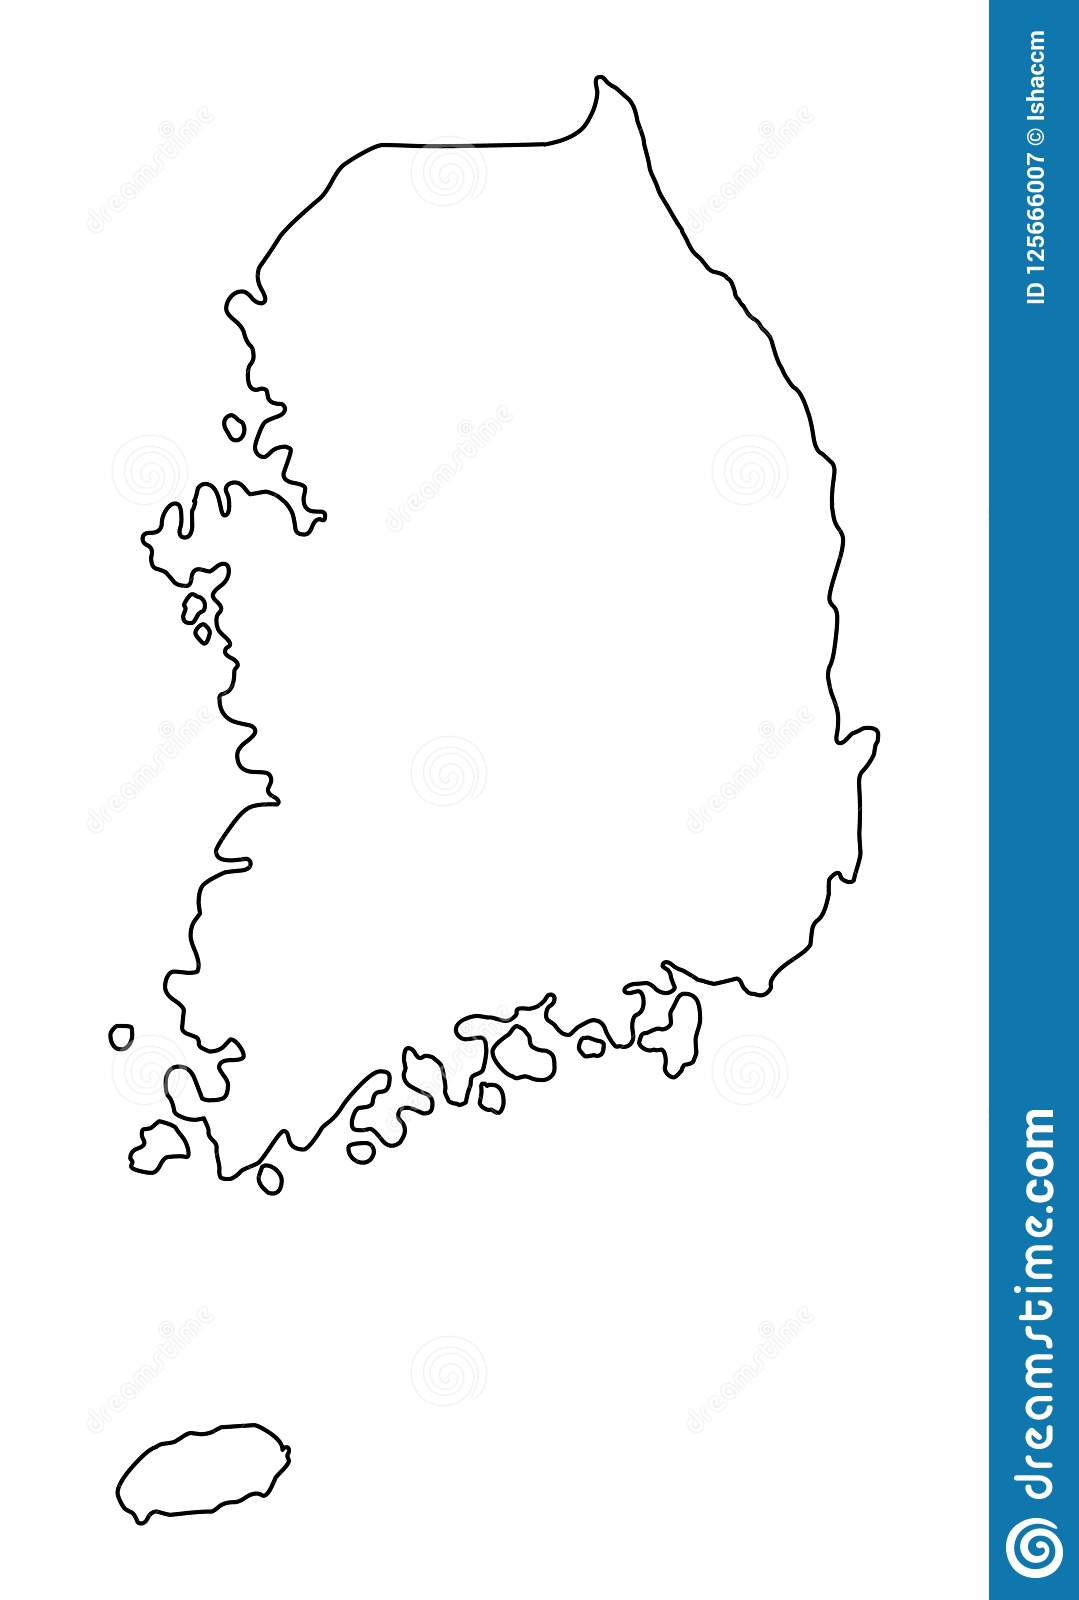 Korea Country Outline Map Wiring Diagrams